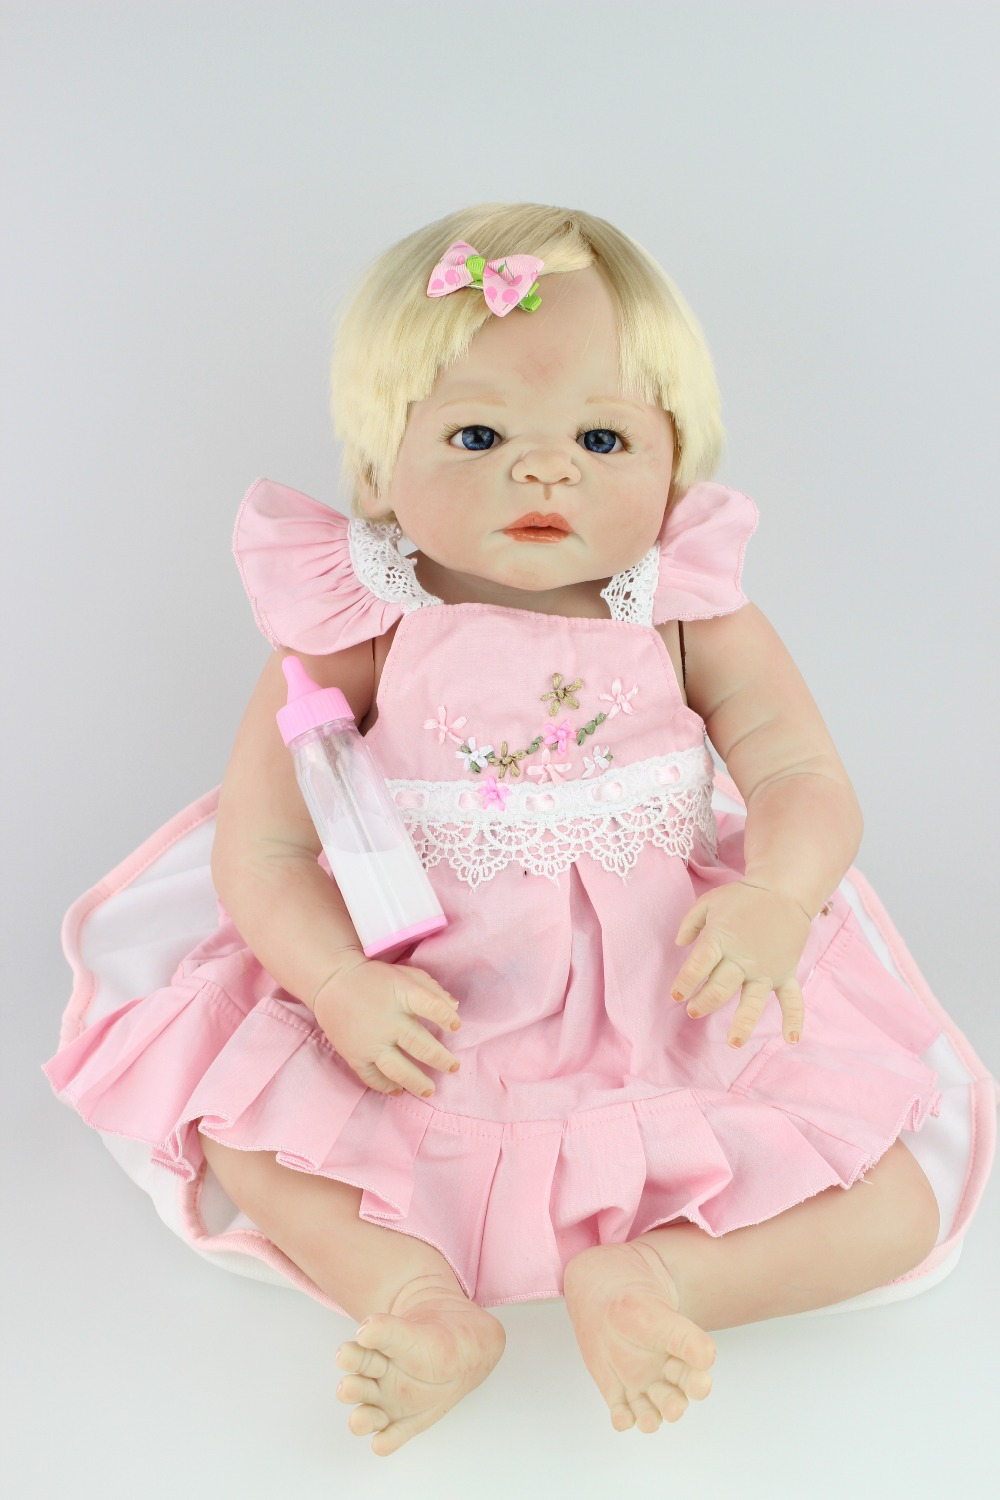 free shipping hotsale reborn baby doll  girl victoria by SHEILA MICHAEL so truly real collection finished doll as picture<br><br>Aliexpress